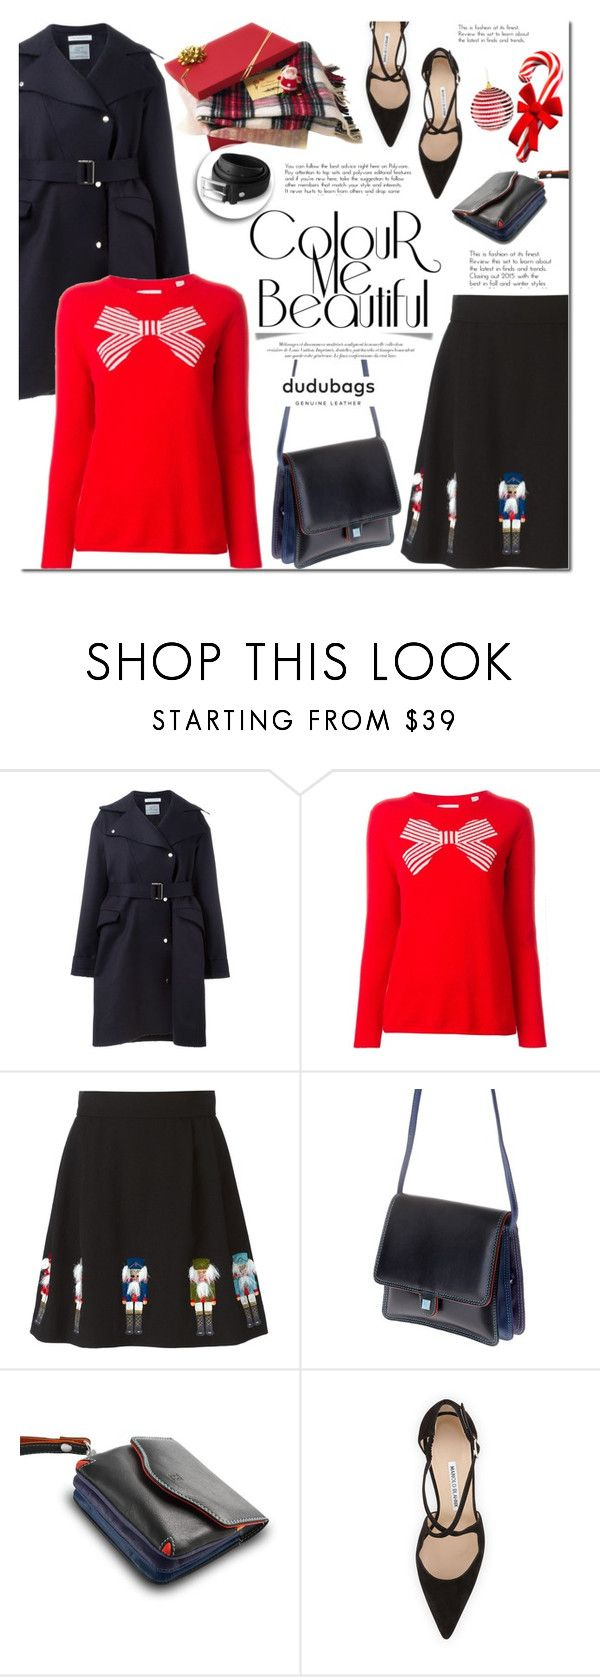 """""""Dudubags.com"""" by mada-malureanu ❤ liked on Polyvore featuring J.W. Anderson, Chinti and Parker, Olympia Le-Tan, DUDU, Manolo Blahnik and dudubags"""